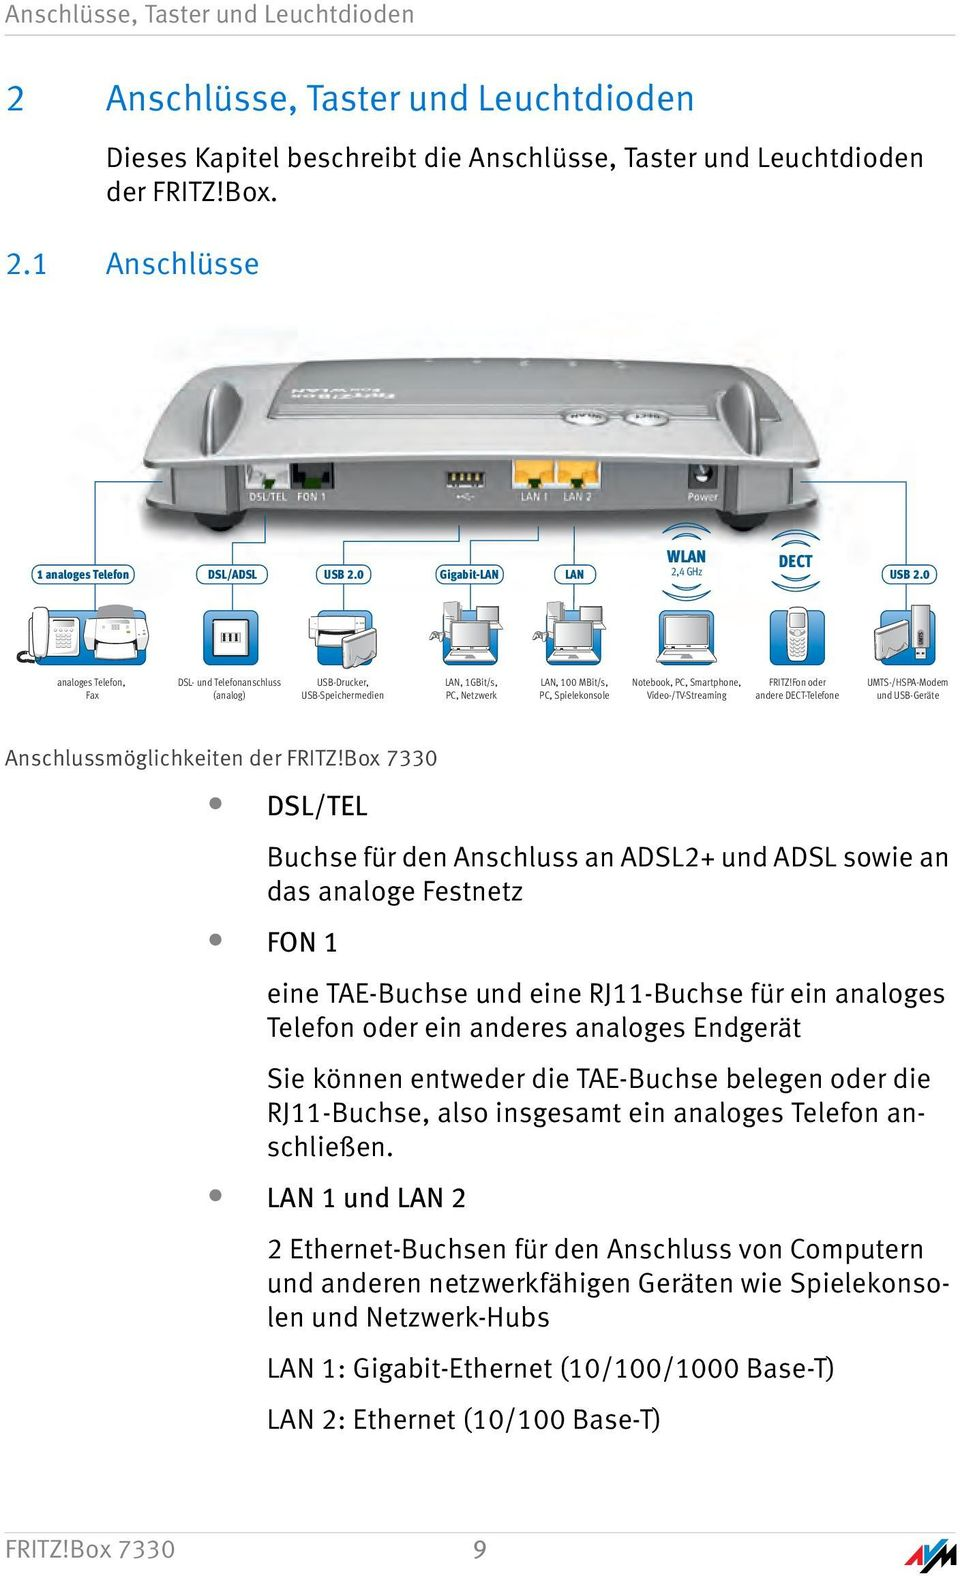 0 analoges Telefon, Fax DSL- und Telefonanschluss (analog) USB-Drucker, USB-Speichermedien LAN, 1GBit/s, PC, Netzwerk LAN, 100 MBit/s, PC, Spielekonsole Notebook, PC, Smartphone, Video-/TV-Streaming